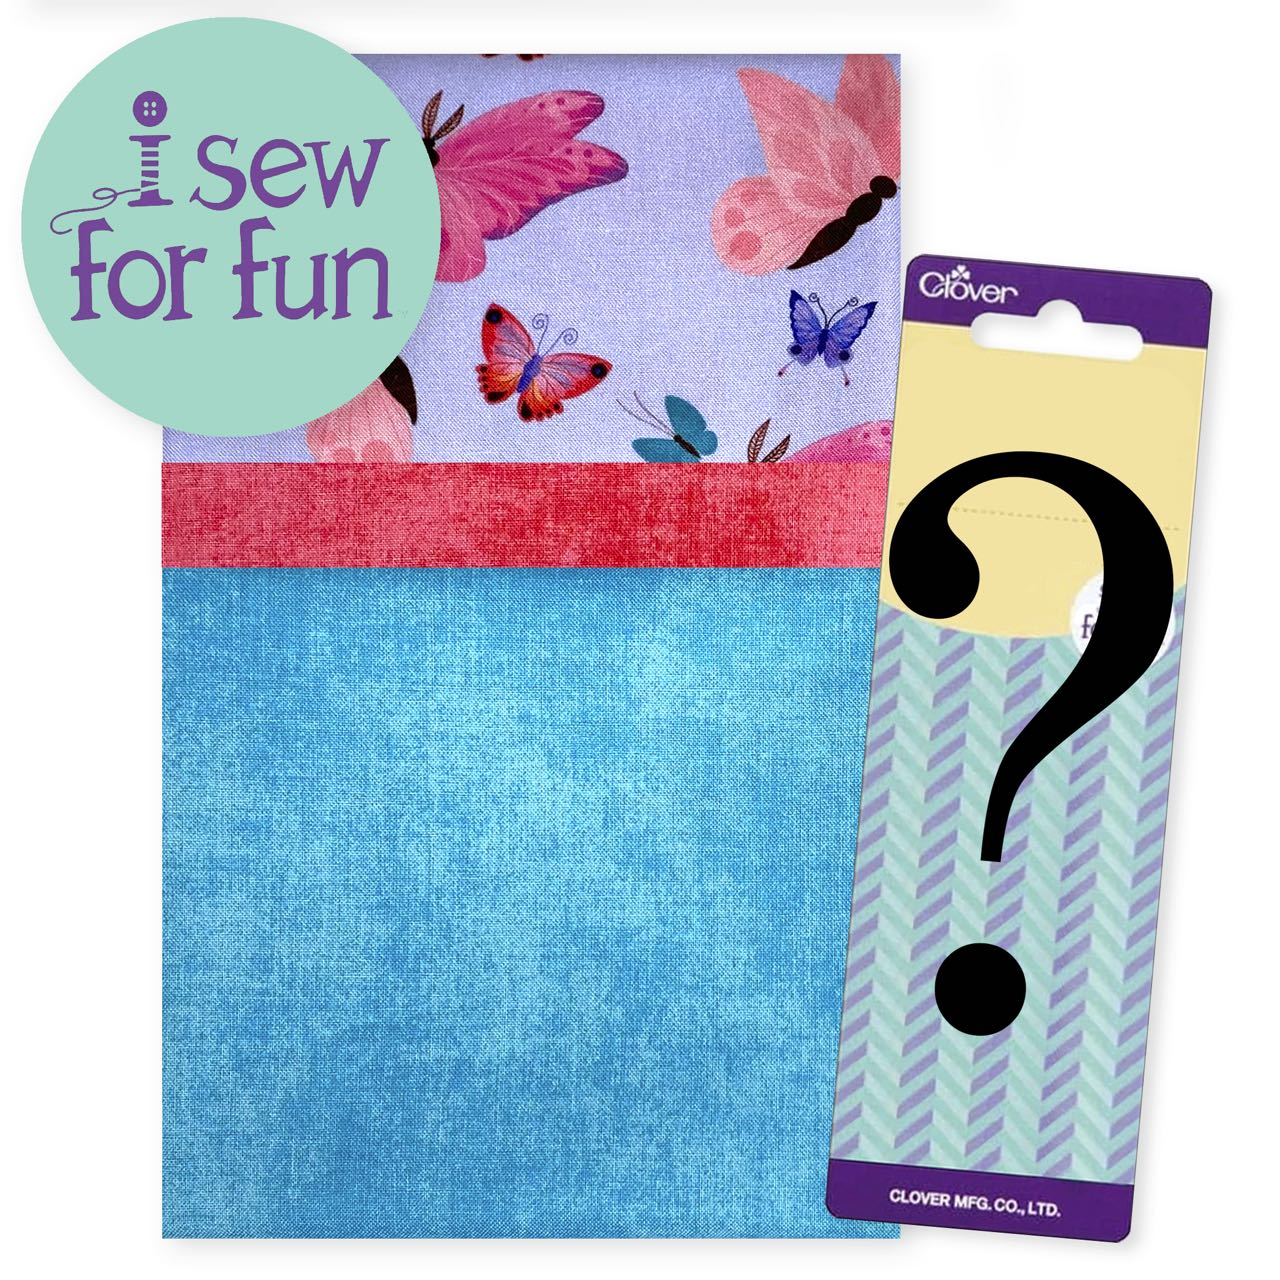 NEW! I Sew For Fun Kids' Sewing Challenge